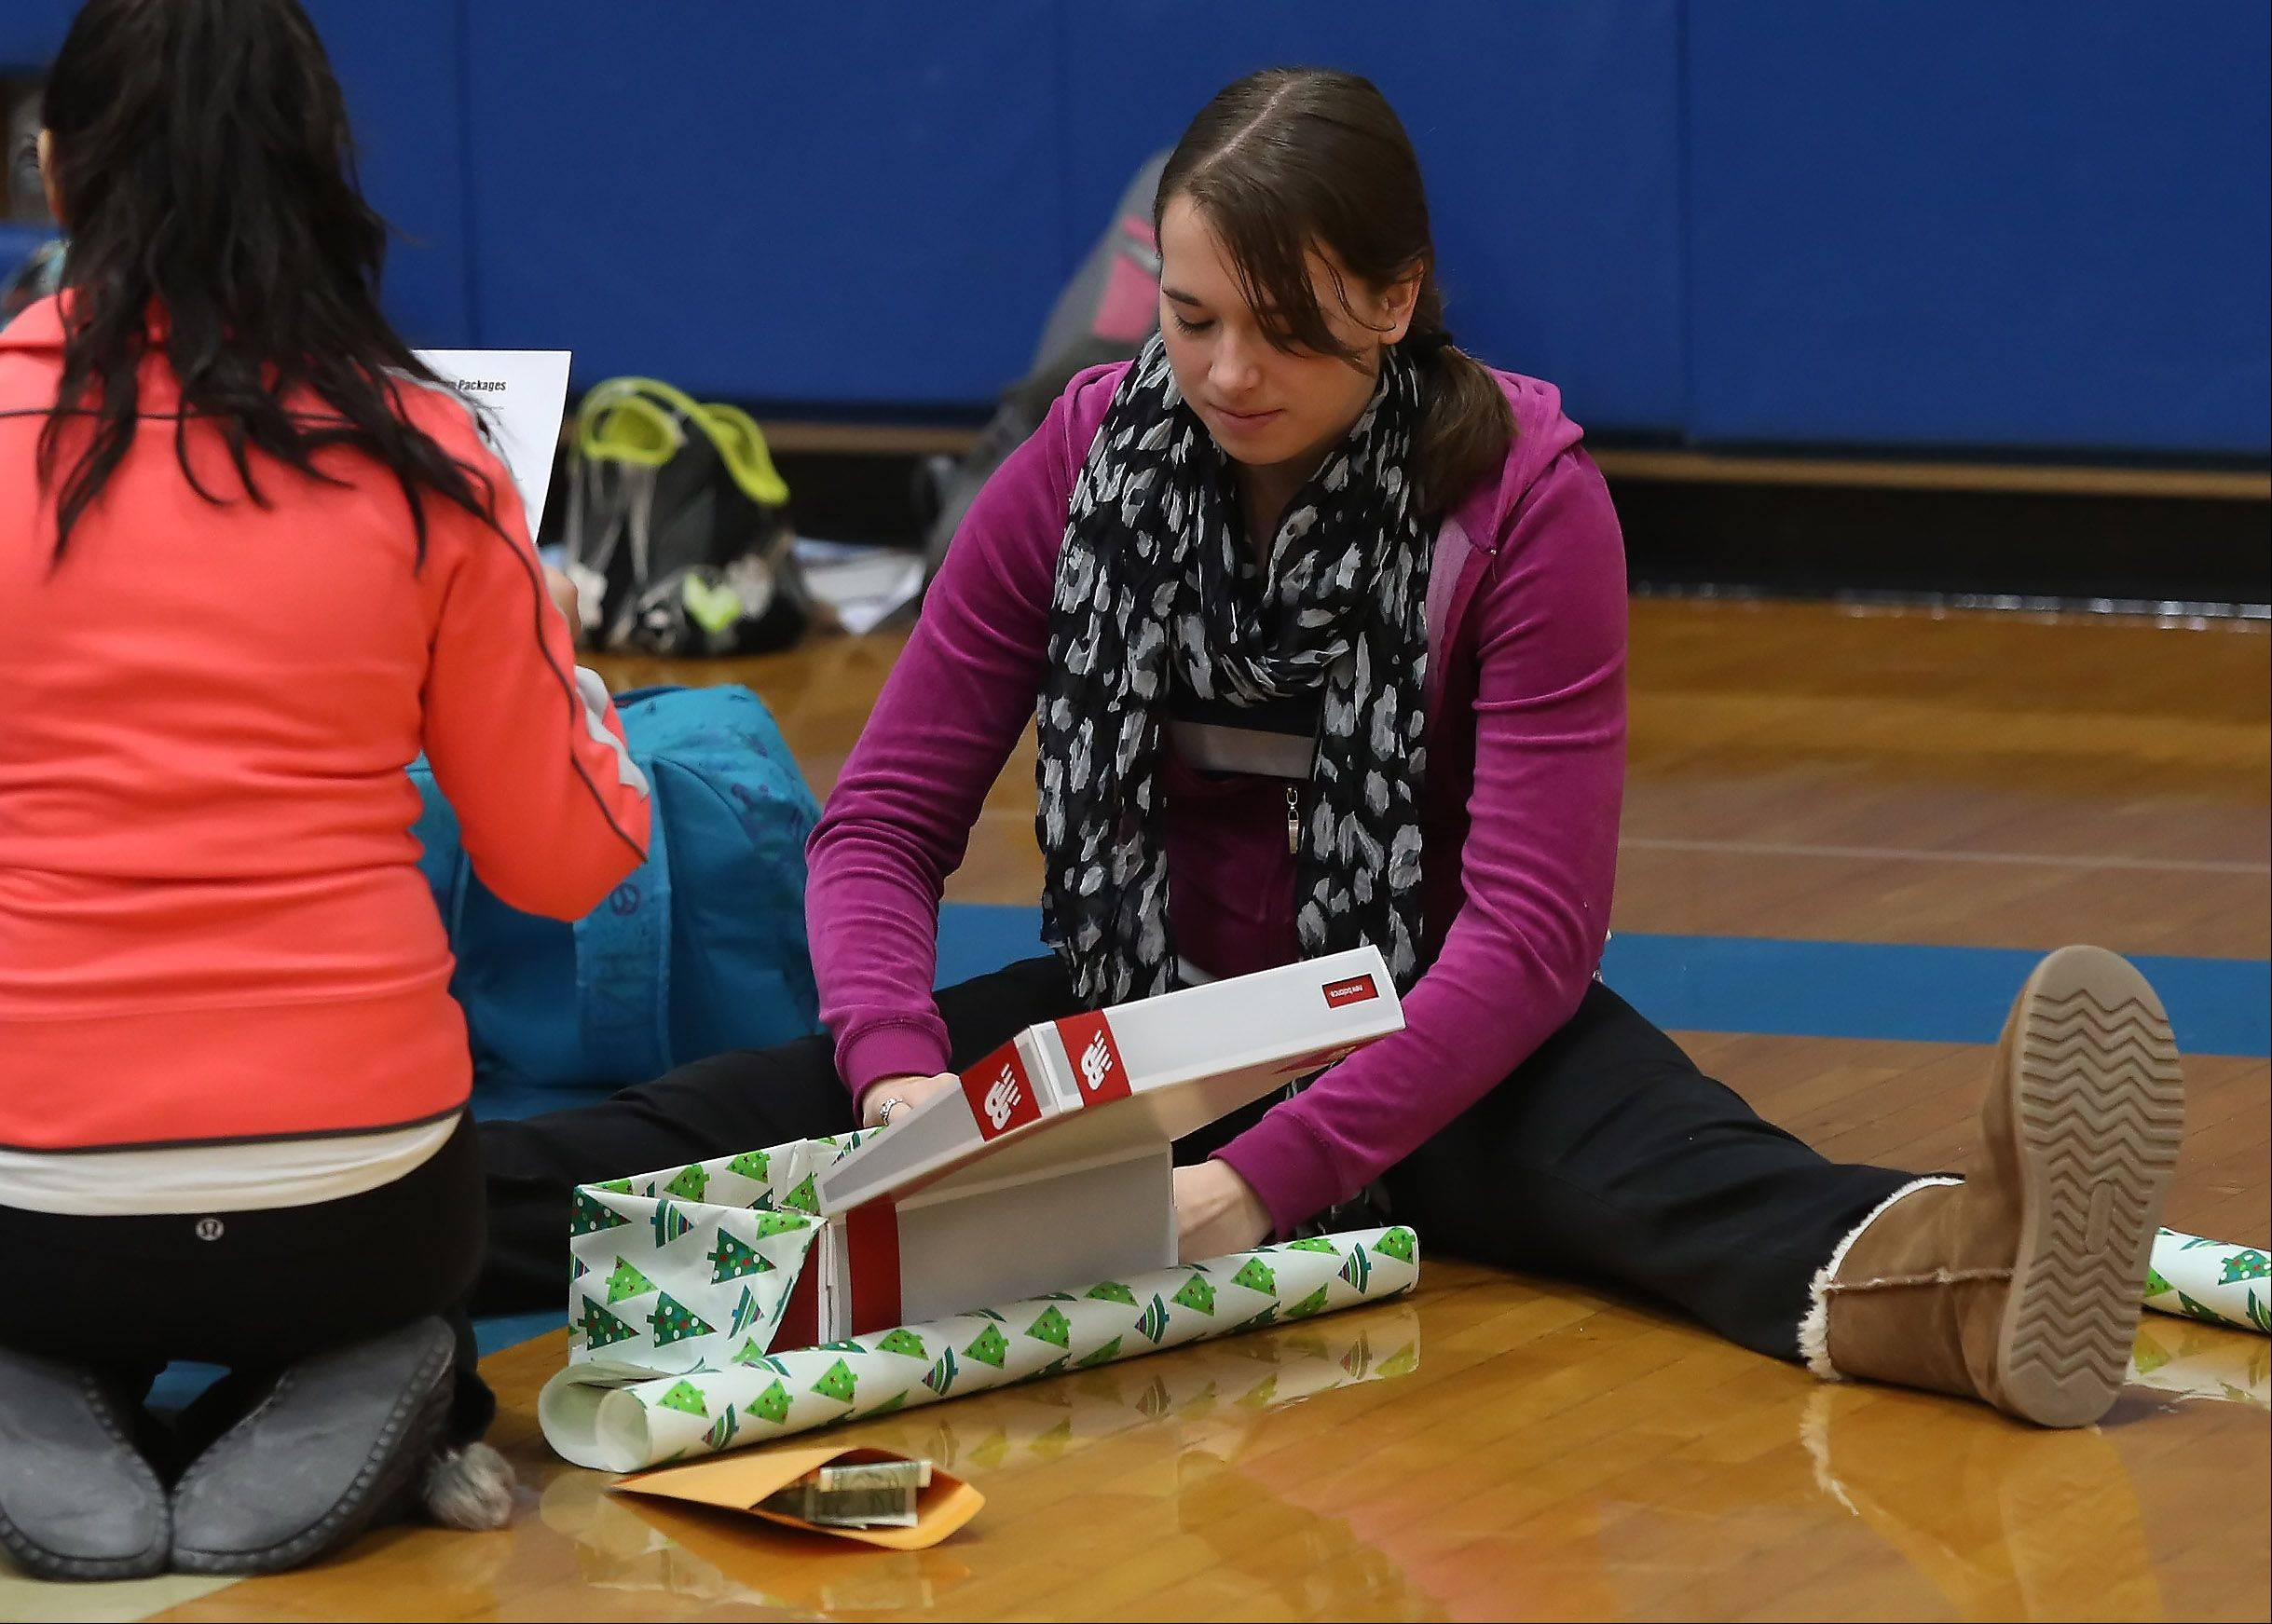 Vernon Hills High School senior Kristina Kliver wraps a shoe box filled with supplies for the COVE Care Package Program on Wednesday. Nearly 350 boxes were collected for students at the Cove Alliance school in Kapeeka, Uganda.